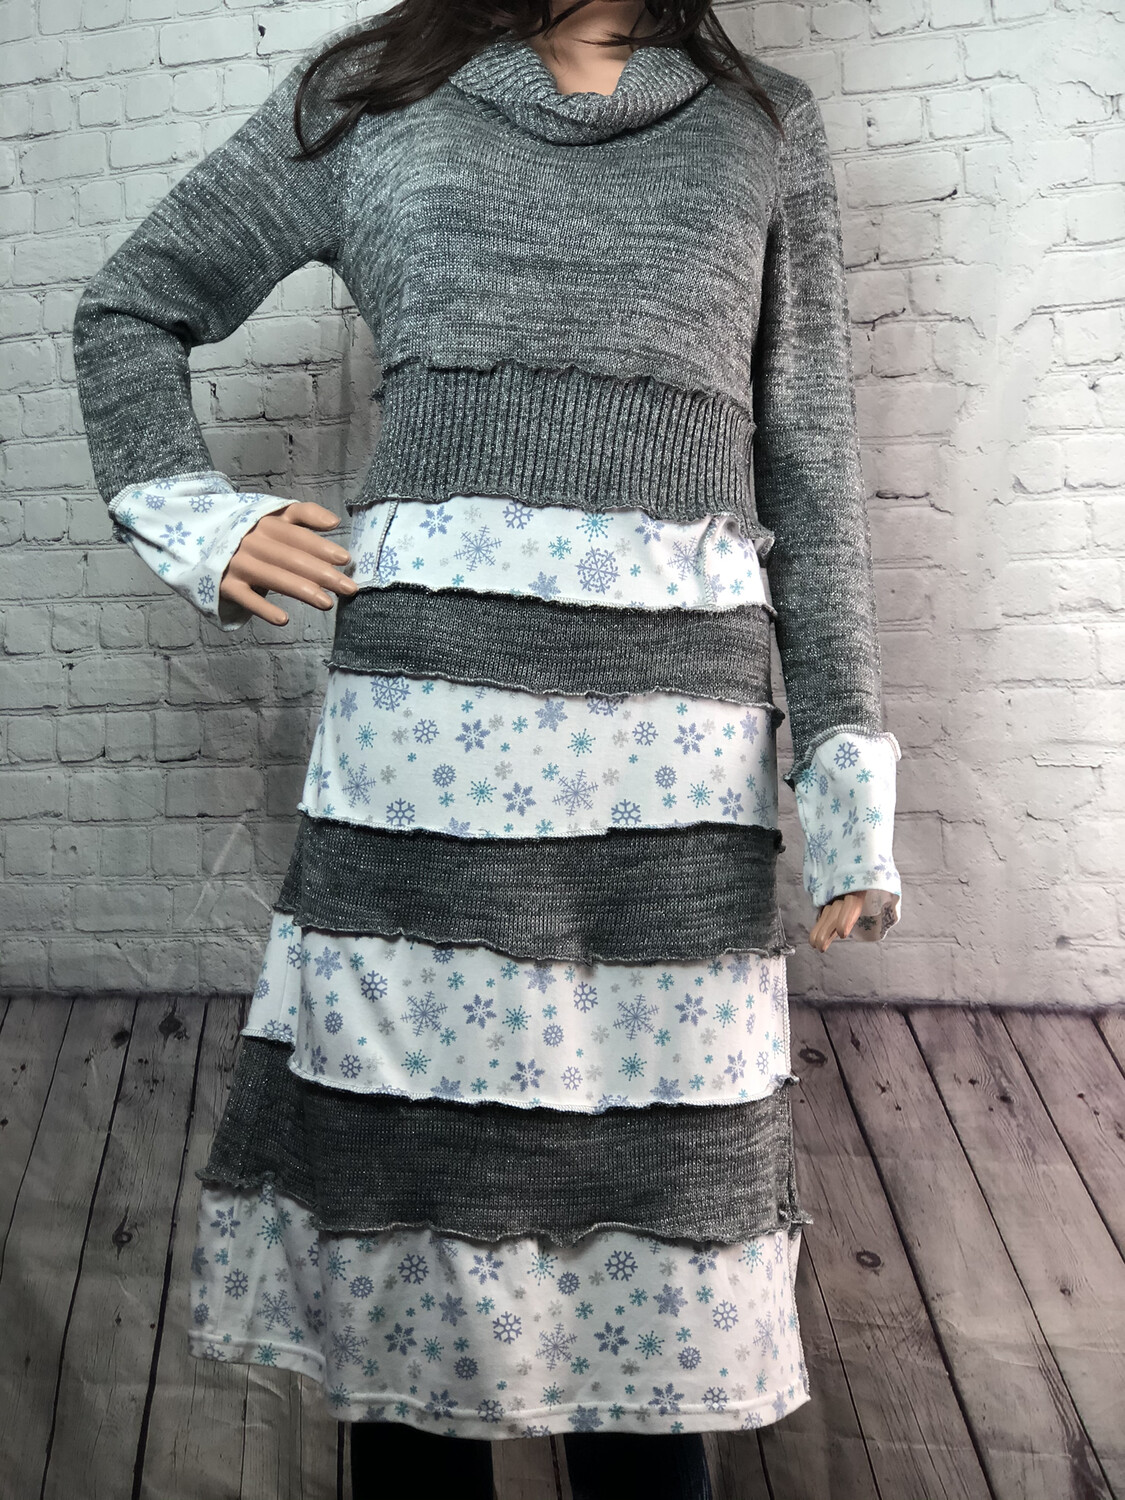 Silver Snowflake Dress Cowl Recreated Sweater Overlock Outside Seams Ruffle Layer Lagenlook OOAK size Large